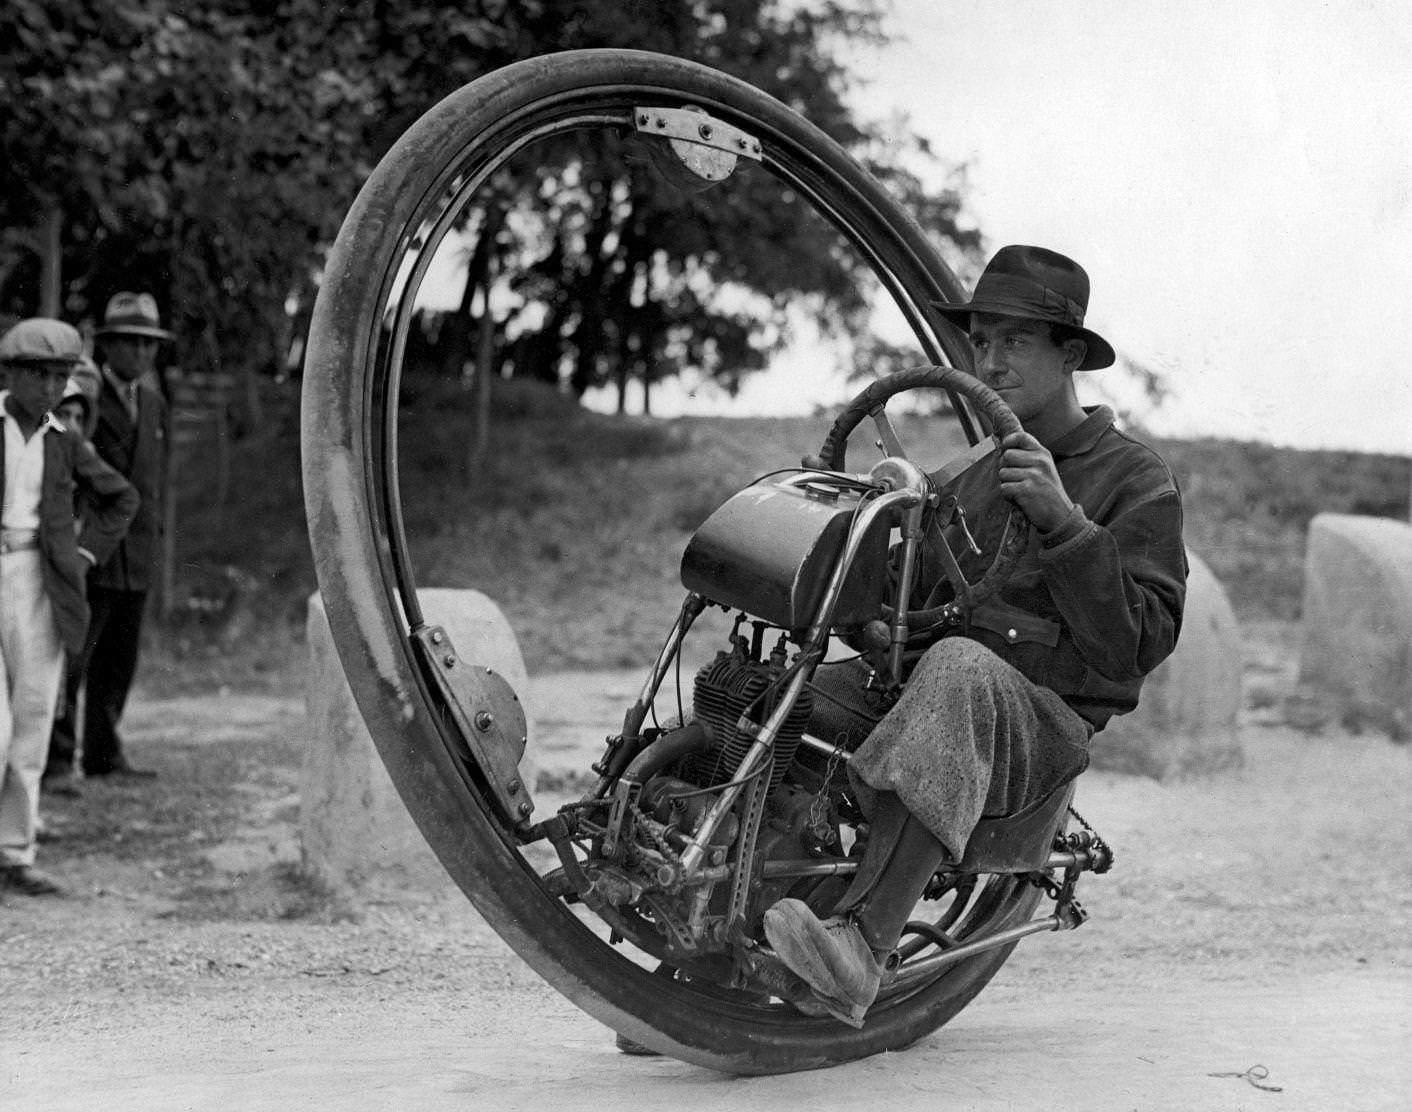 Monowheel built by M. Goventosa Monowheel built by M. Goventosa